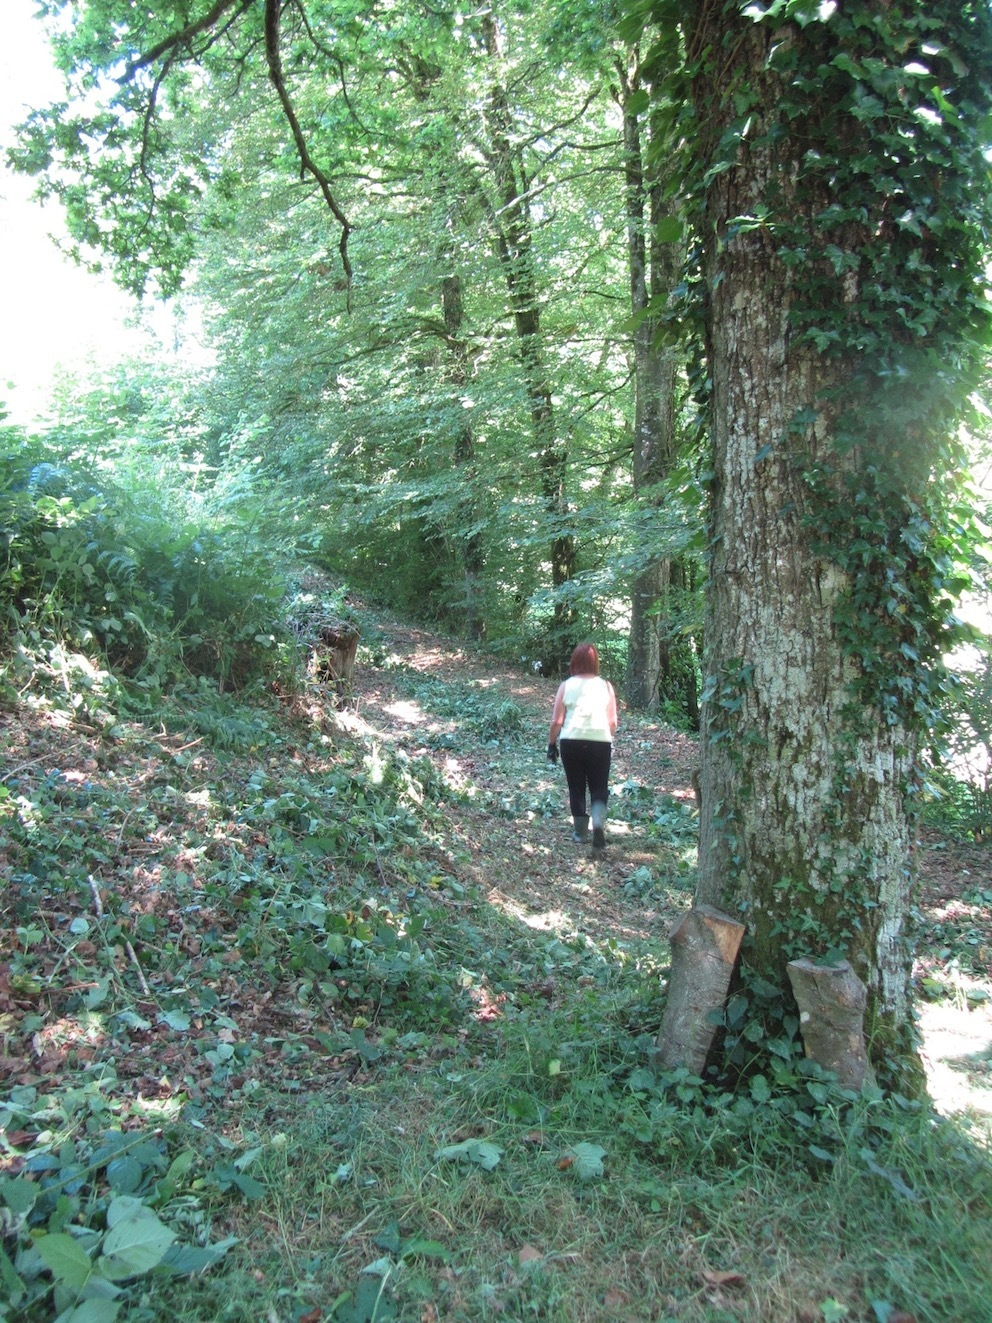 wander through the woods at at Le Choisel, Normandy, France